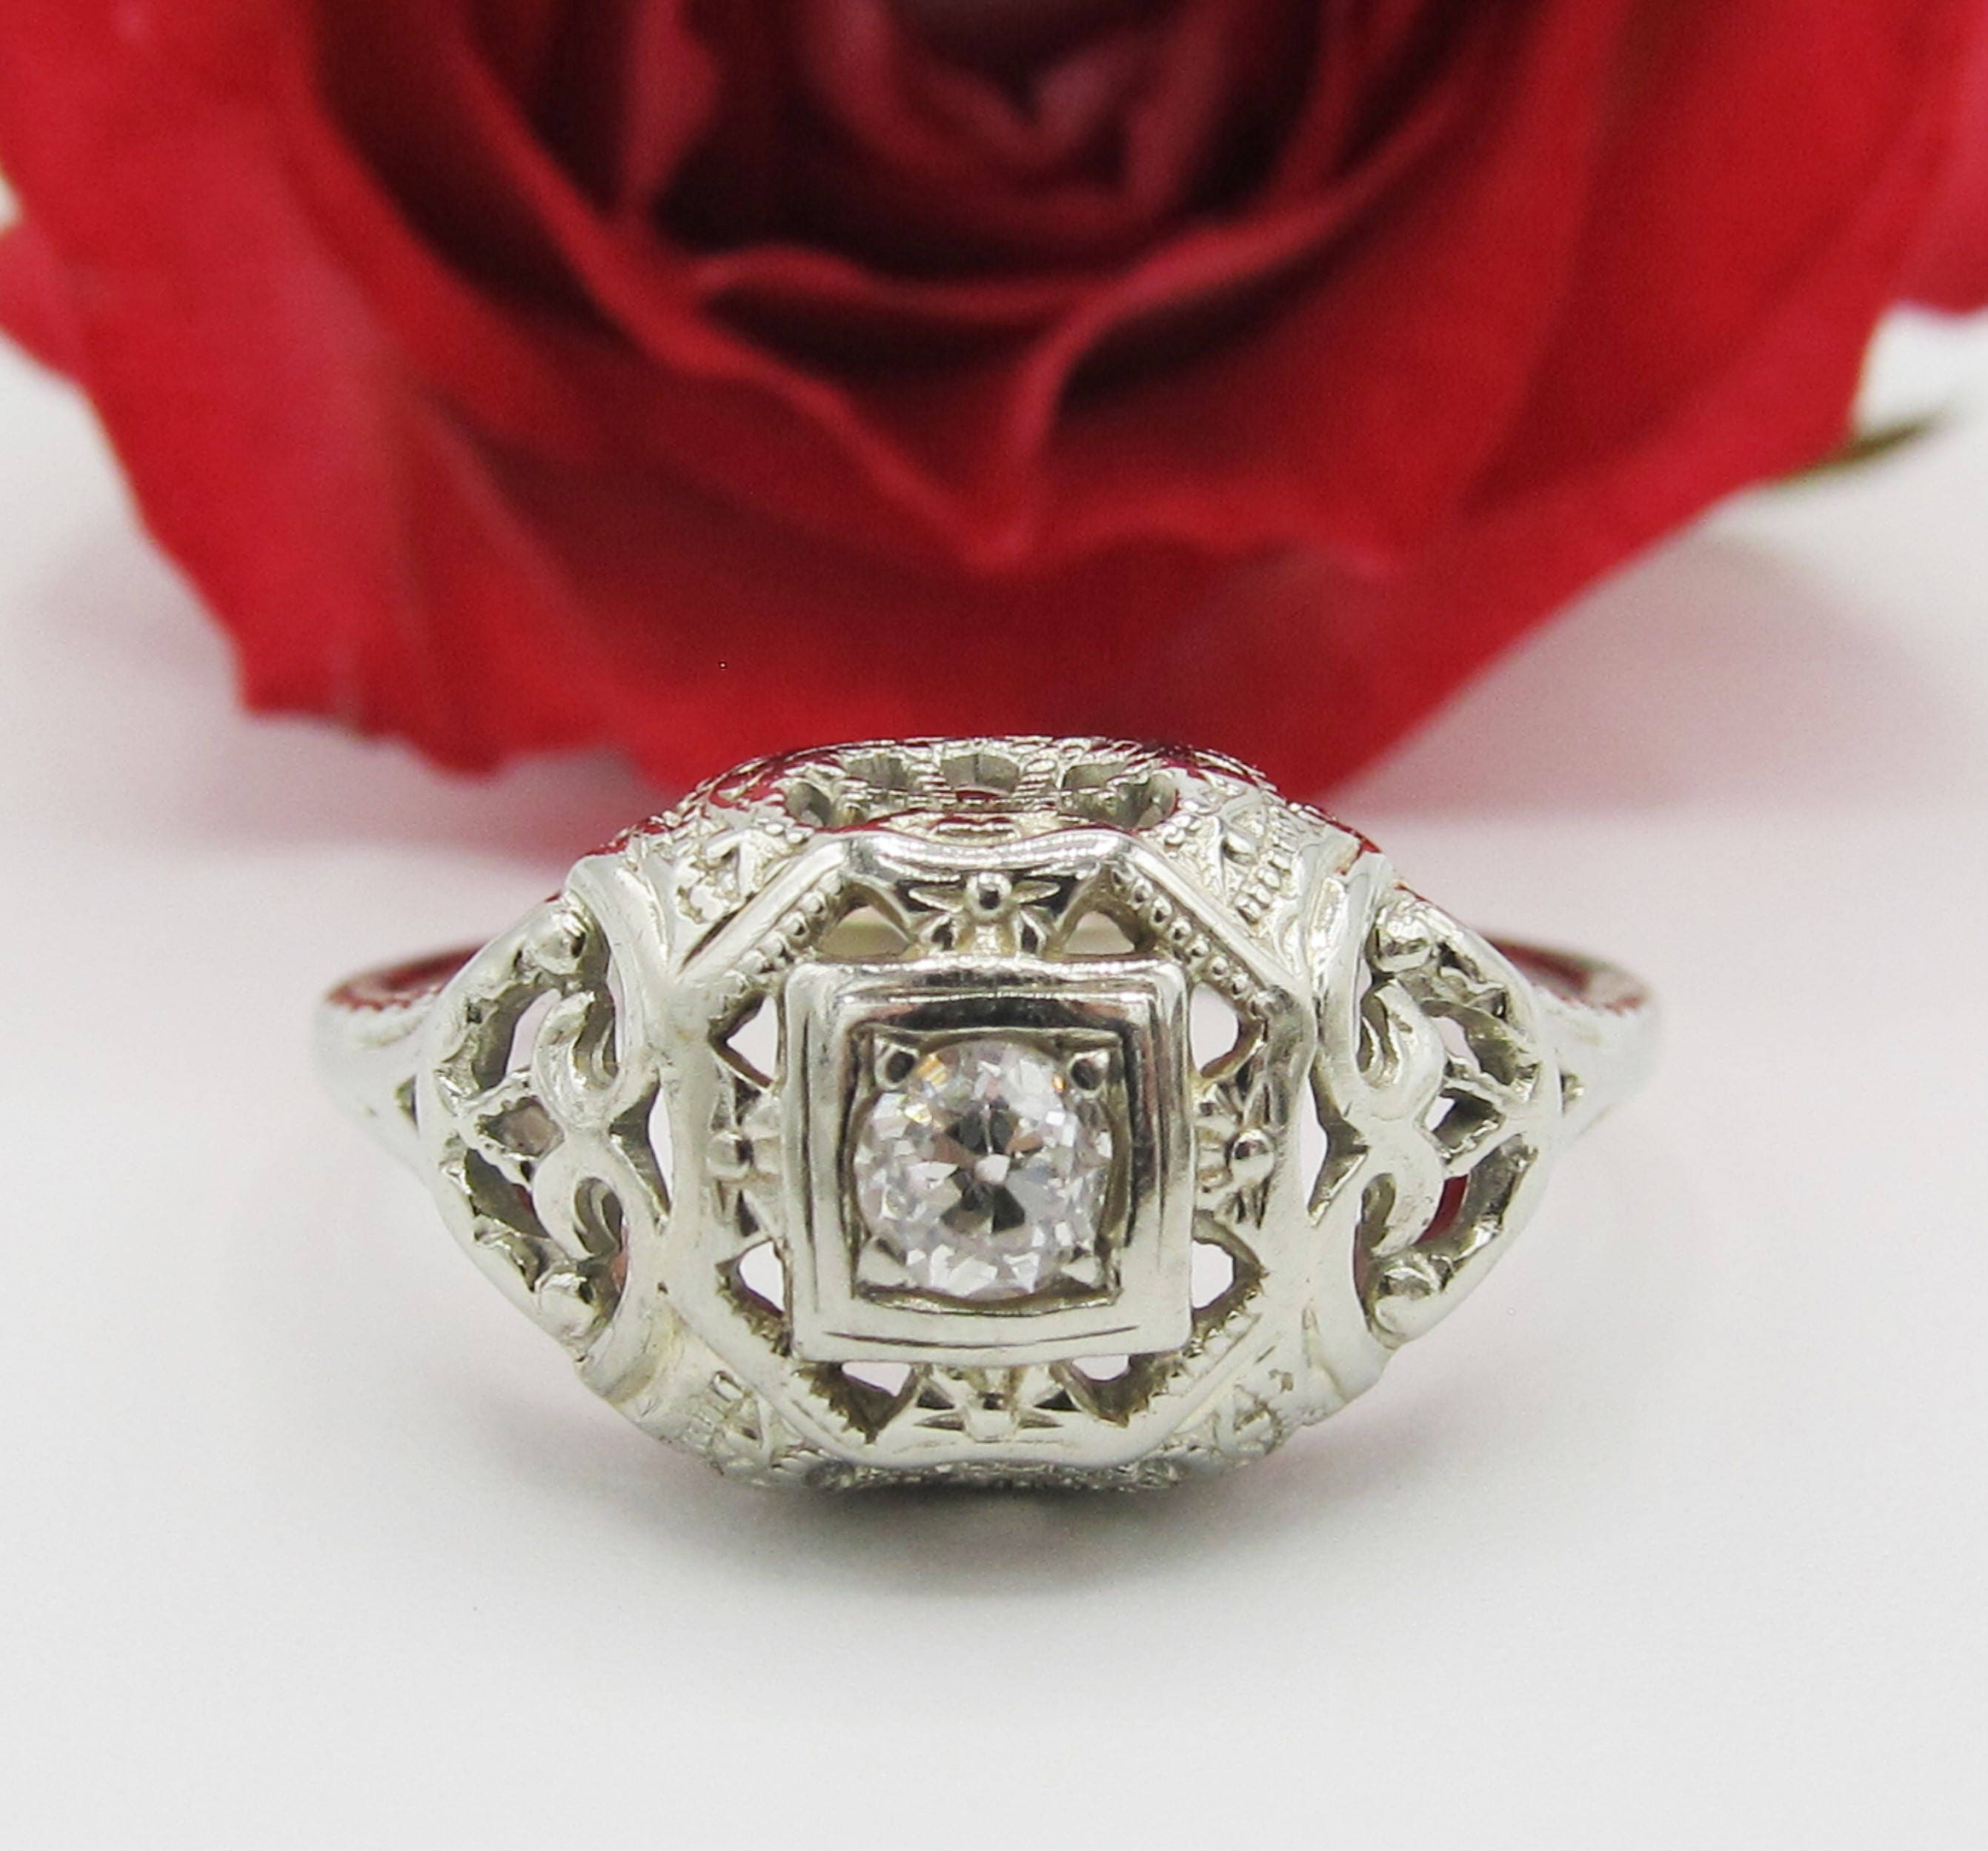 Art Deco Diamond Filigree Engagement Ring 14k White Gold